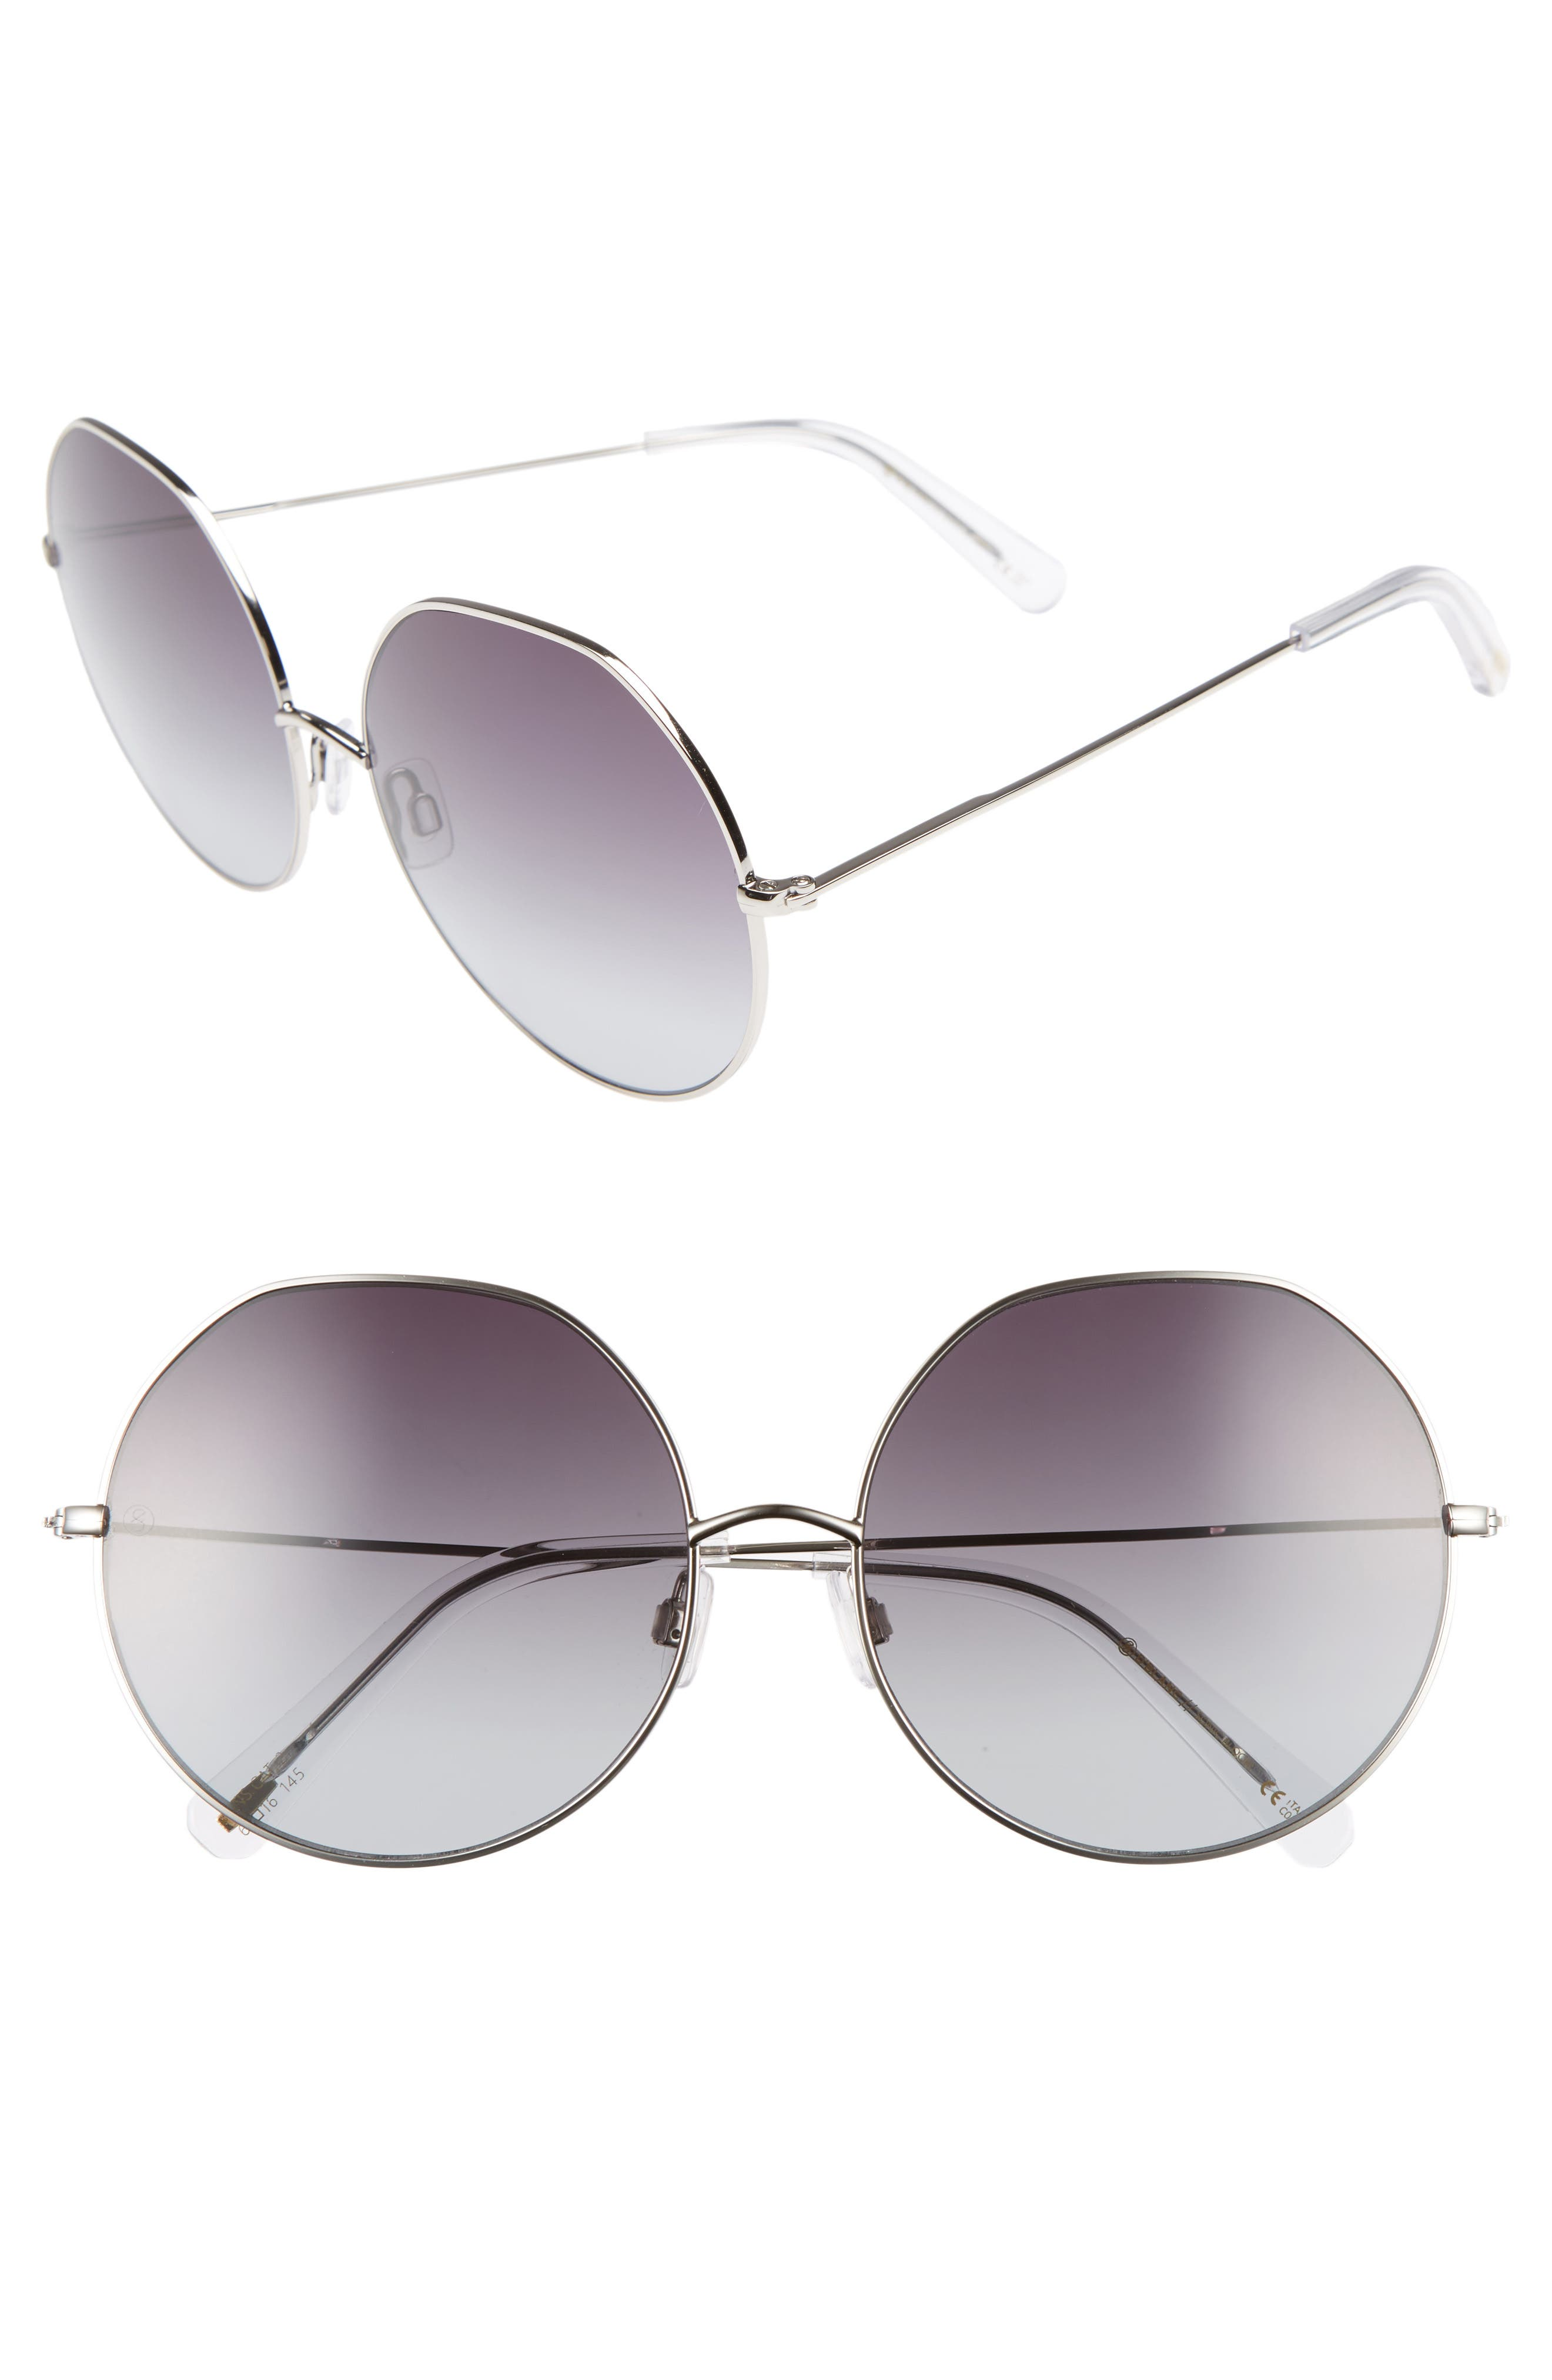 Alternate Image 1 Selected - D'BLANC Sonic Boom 62mm Gradient Round Sunglasses